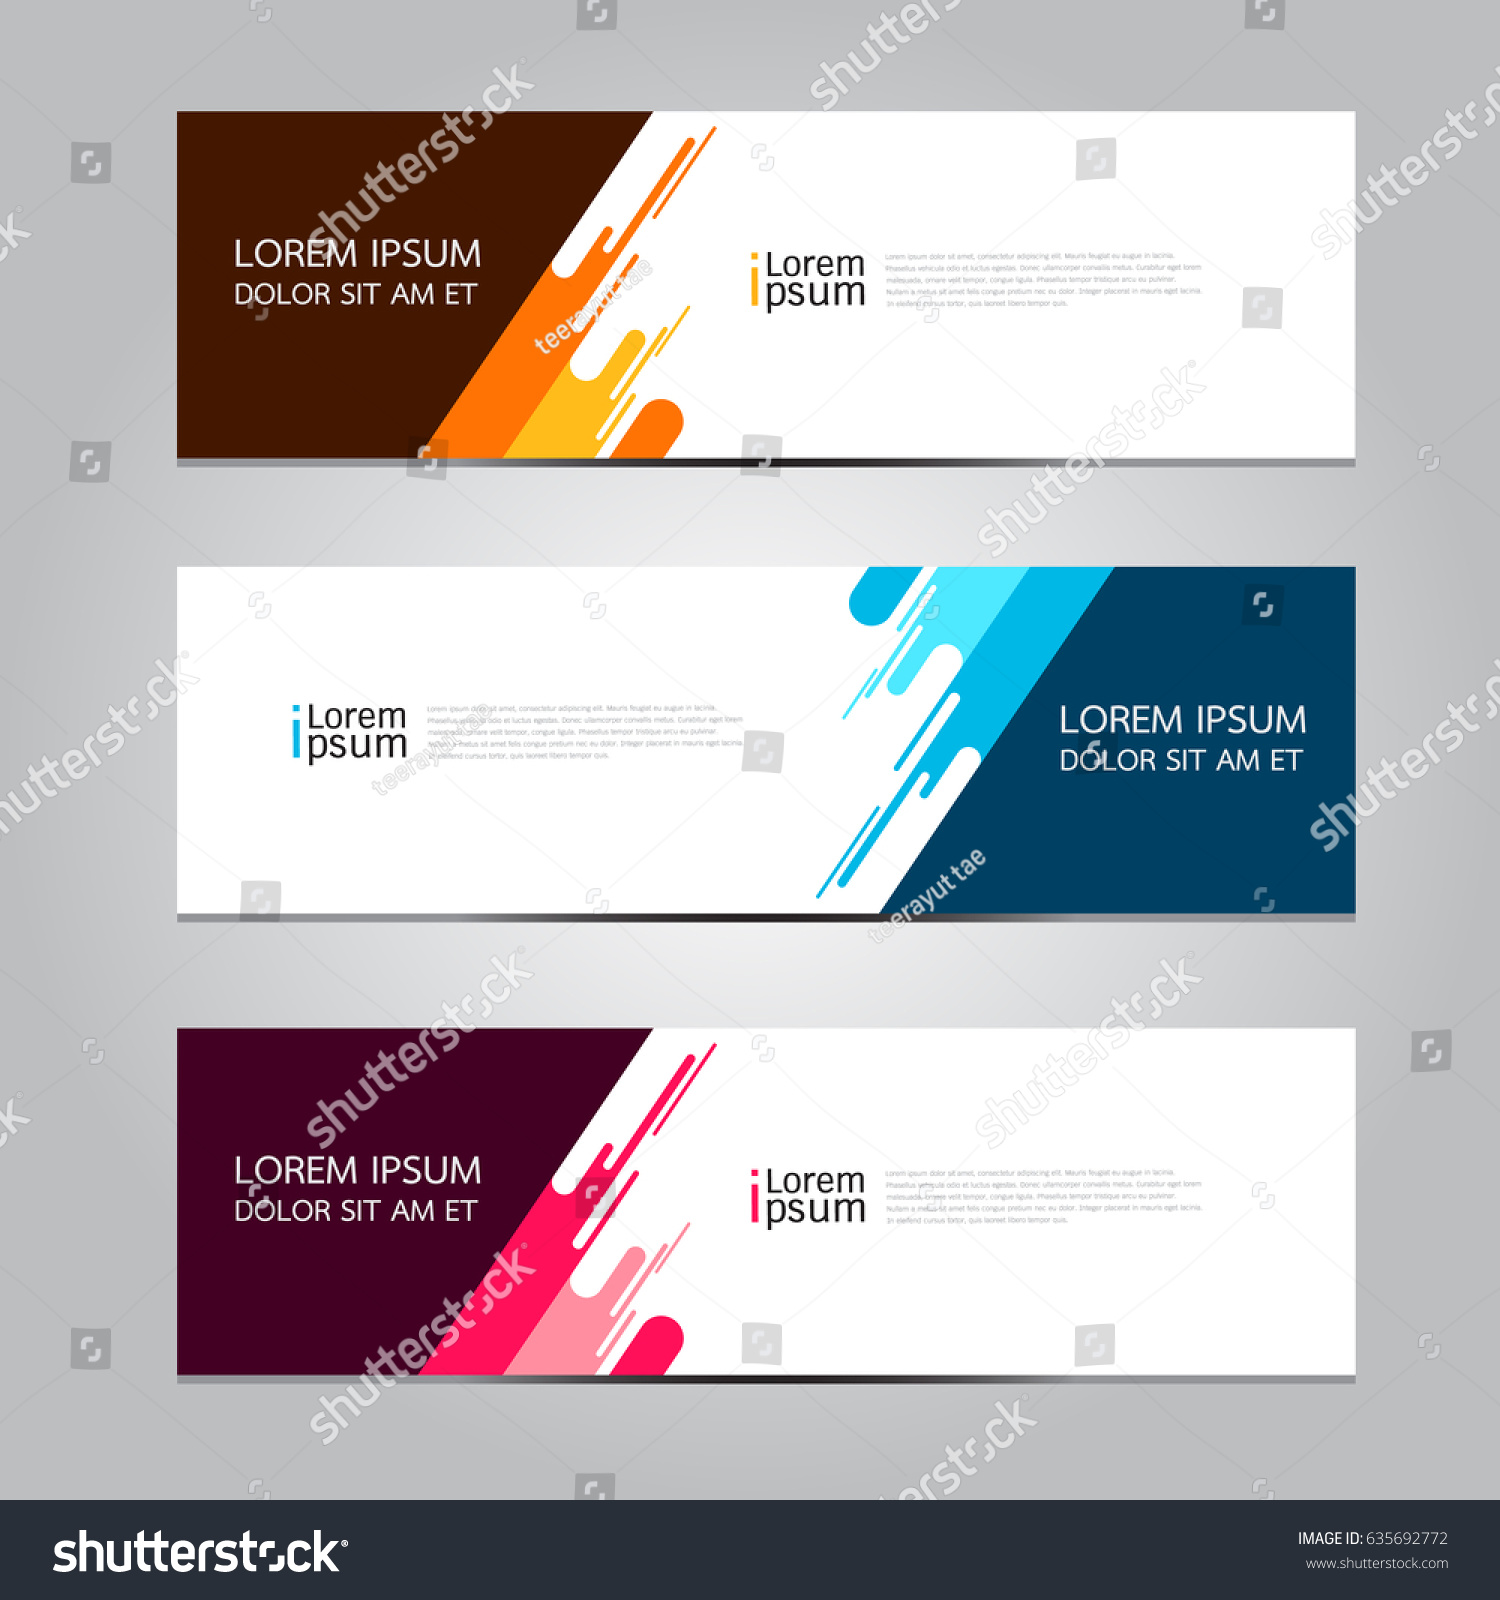 Vector abstract geometric design banner web template. #635692772